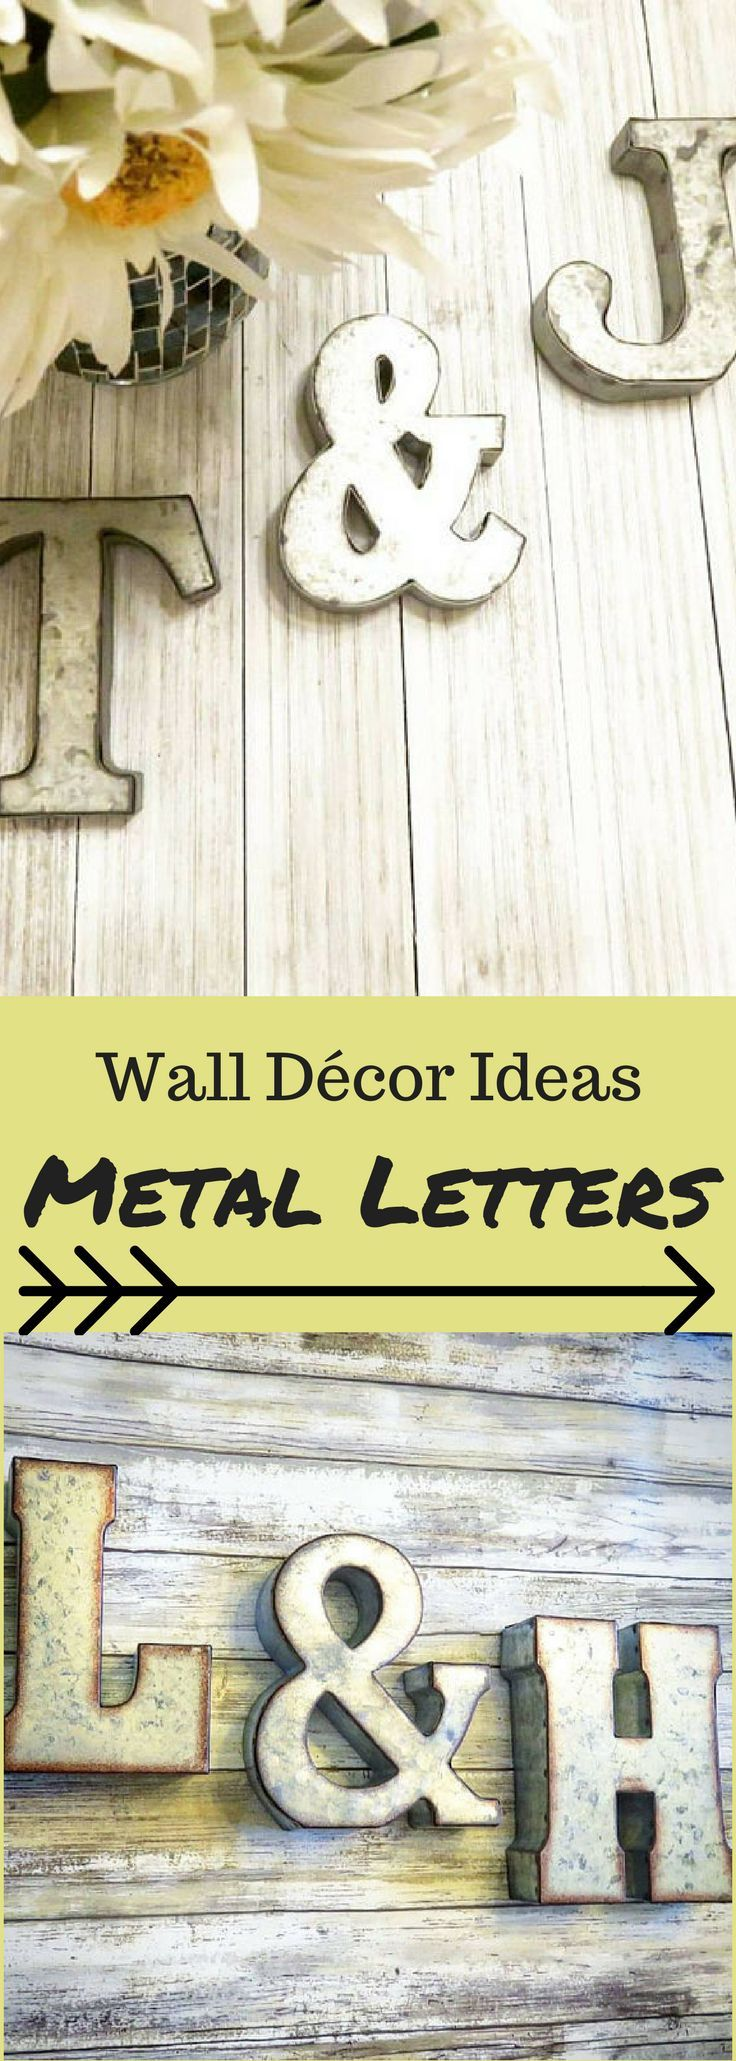 Metal Letters, Metal Wall Letters, Large Metal Letters, Rustic ...